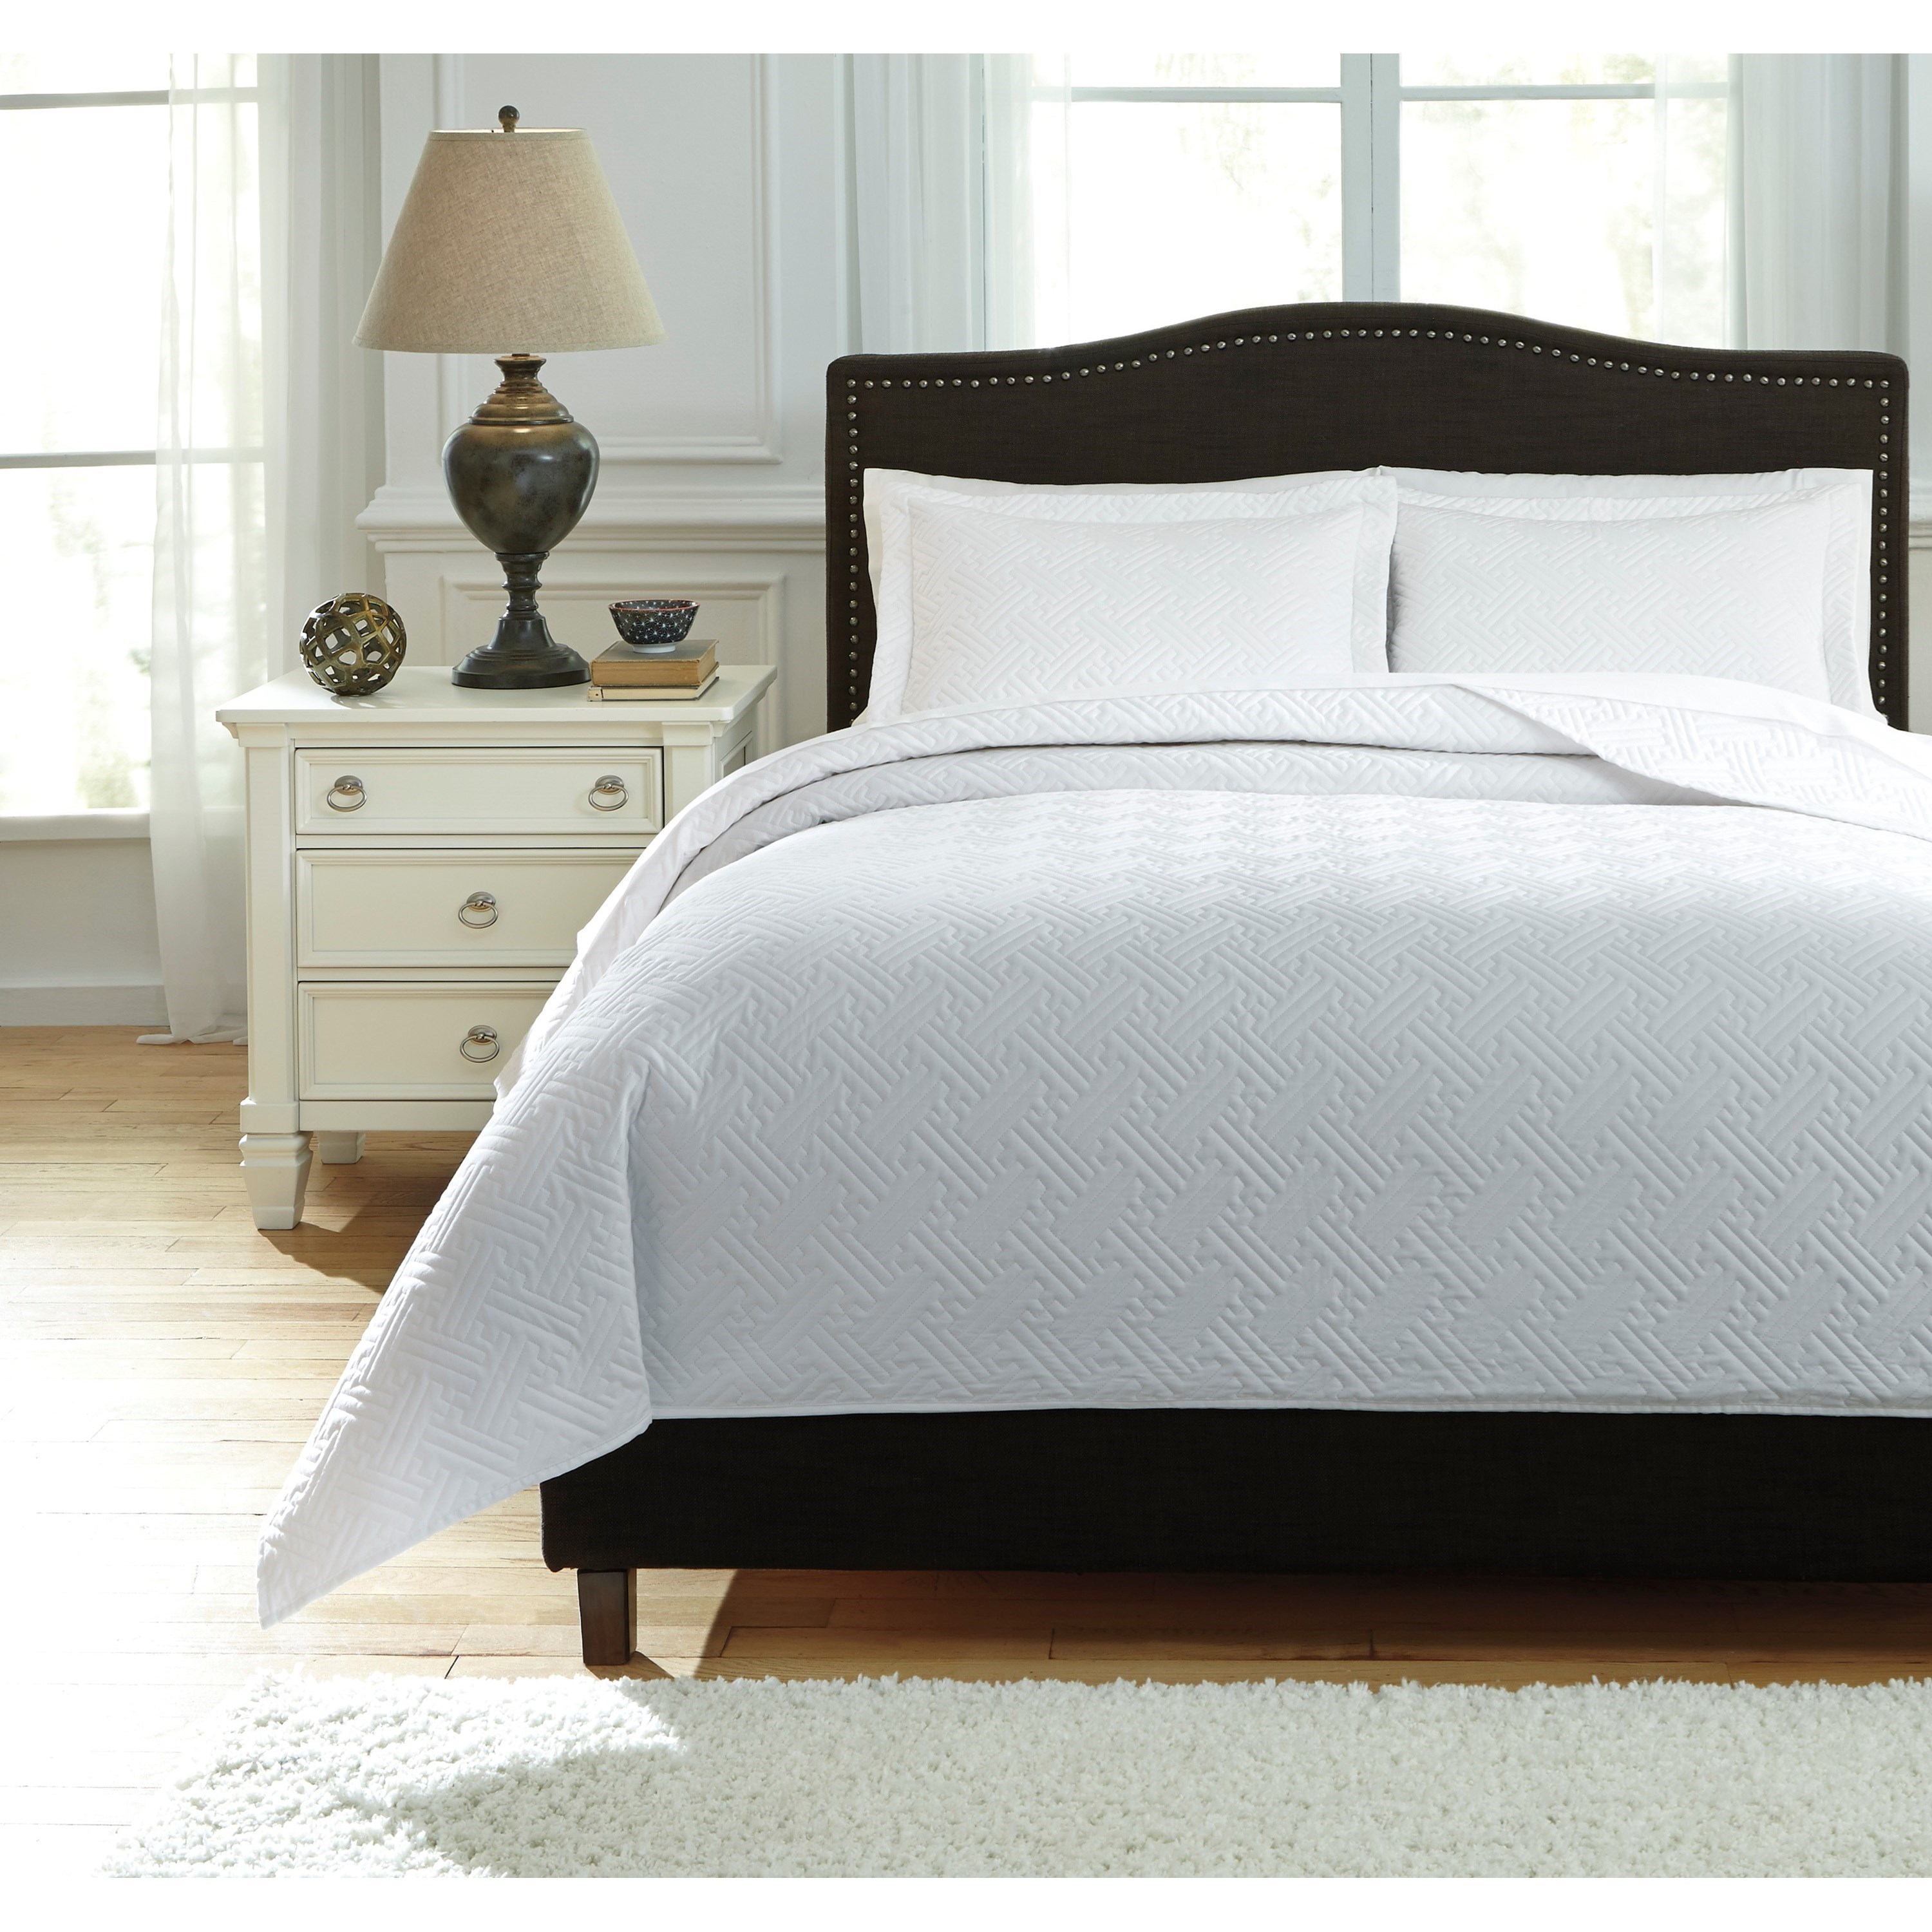 Signature Design by Ashley Bedding Sets King Aldis White Coverlet Set - Item Number: Q739003K